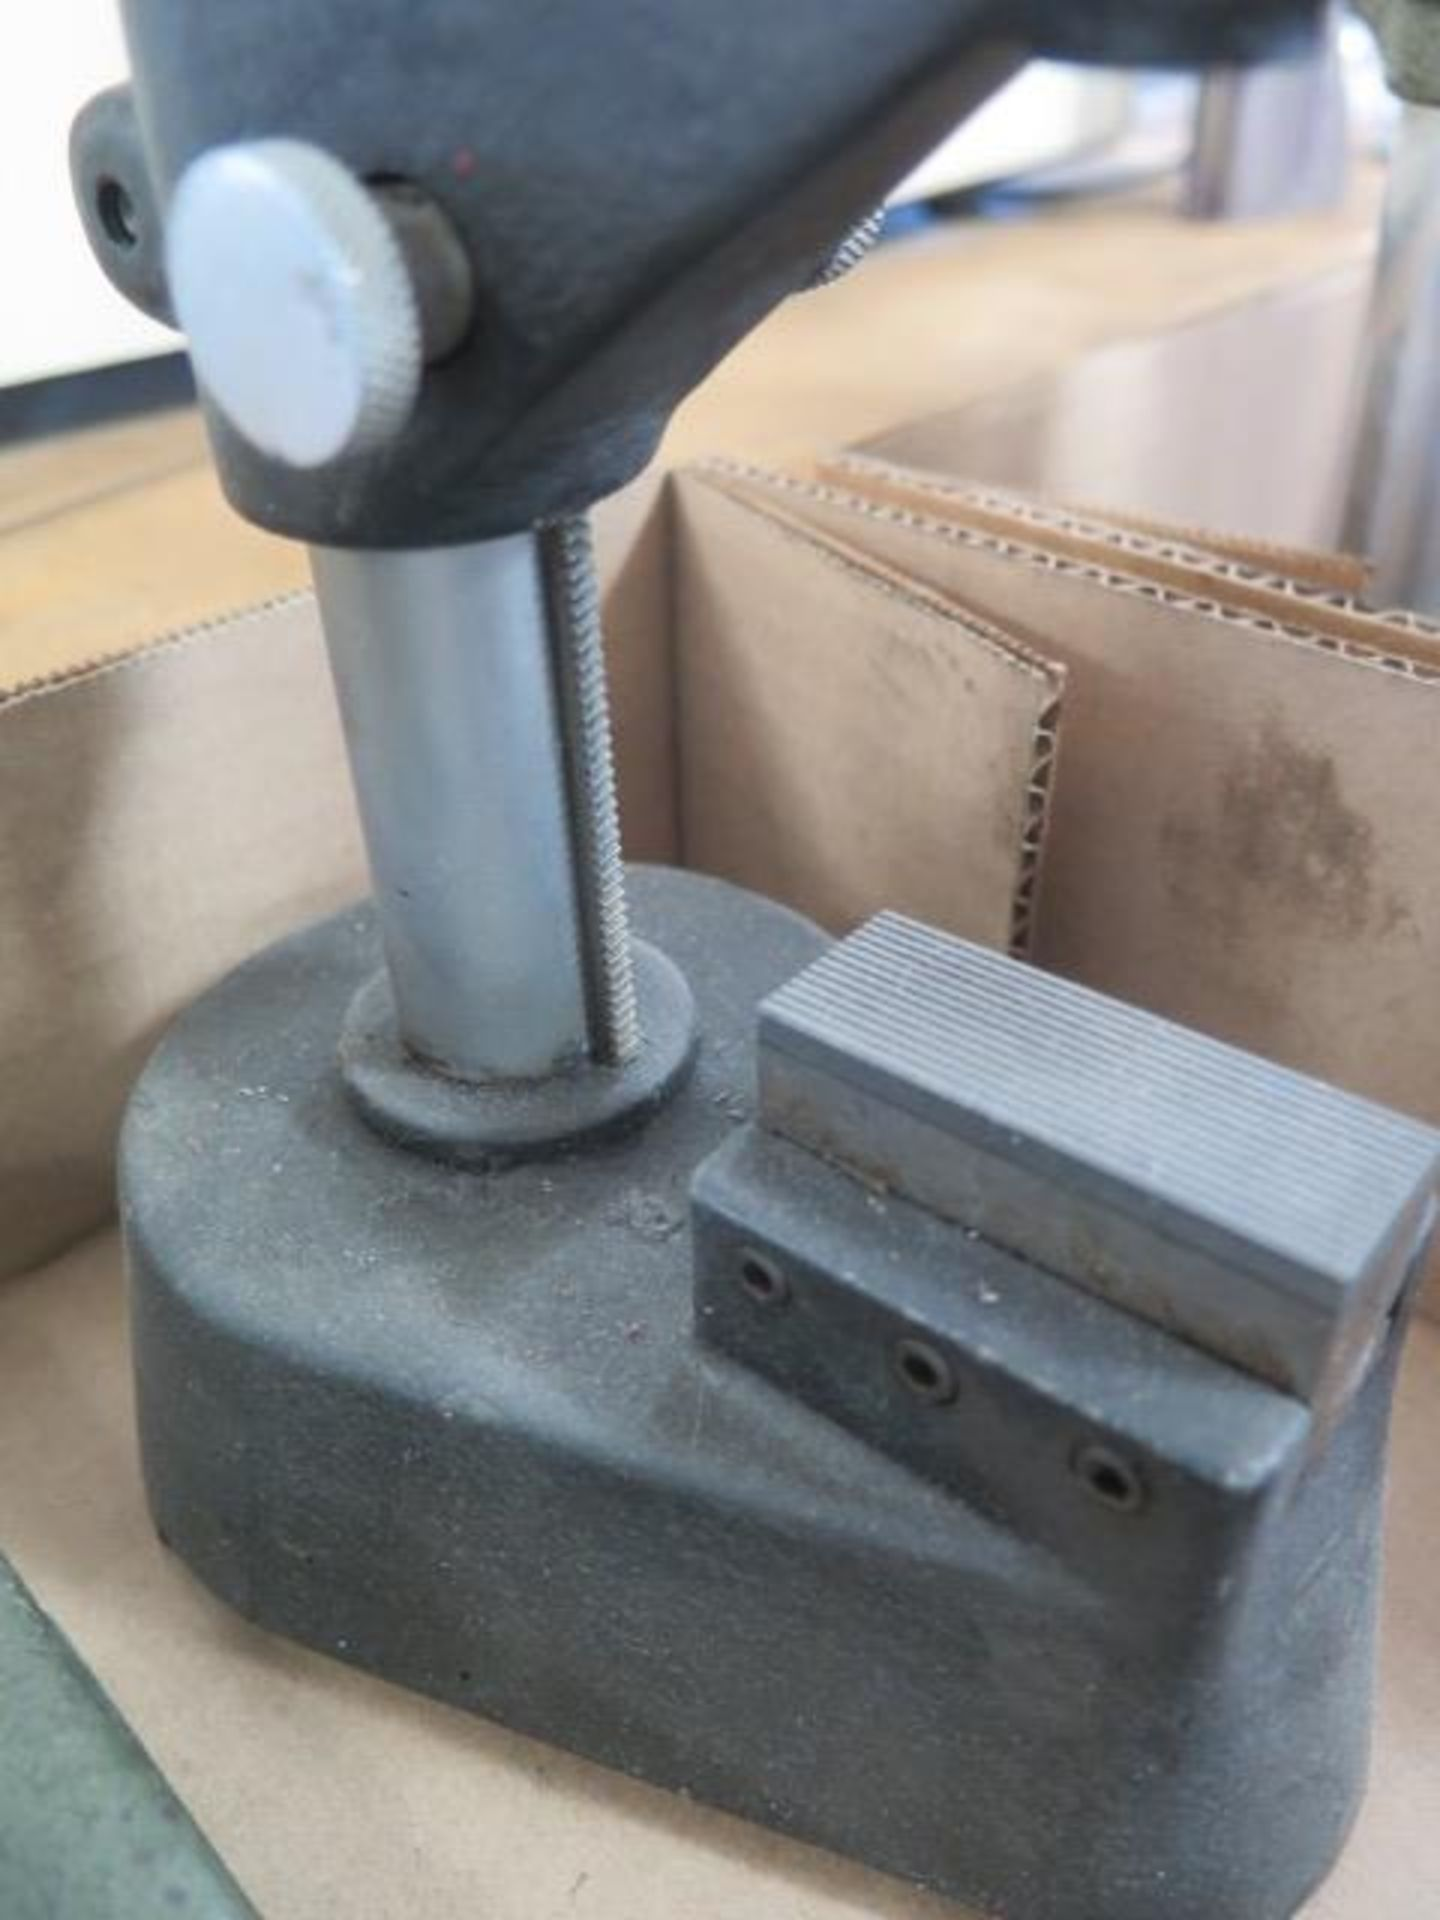 Misc Indicator Stands (3) (SOLD AS-IS - NO WARRANTY) - Image 6 of 6